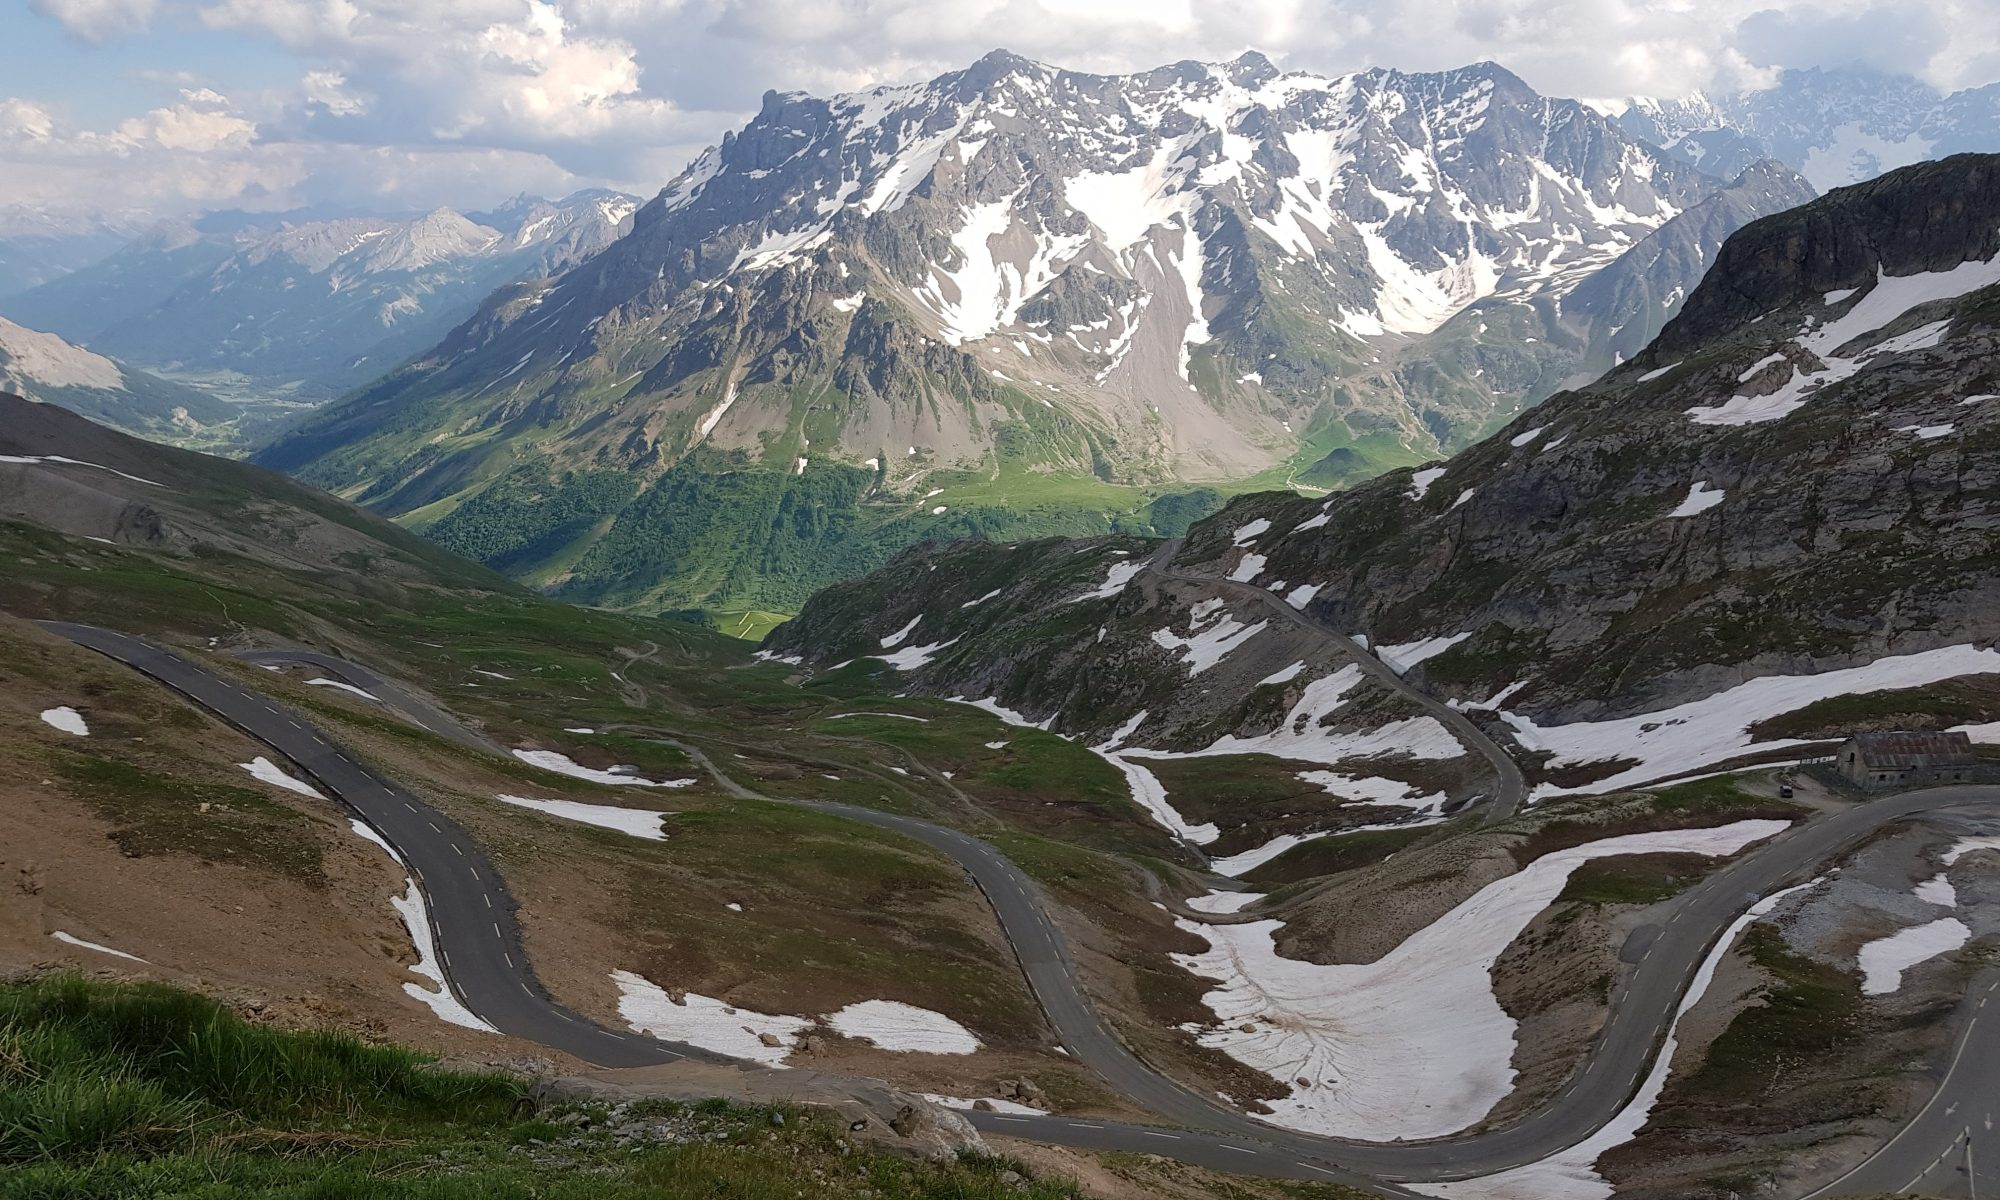 HeikesEscapes Motorcycle Tours